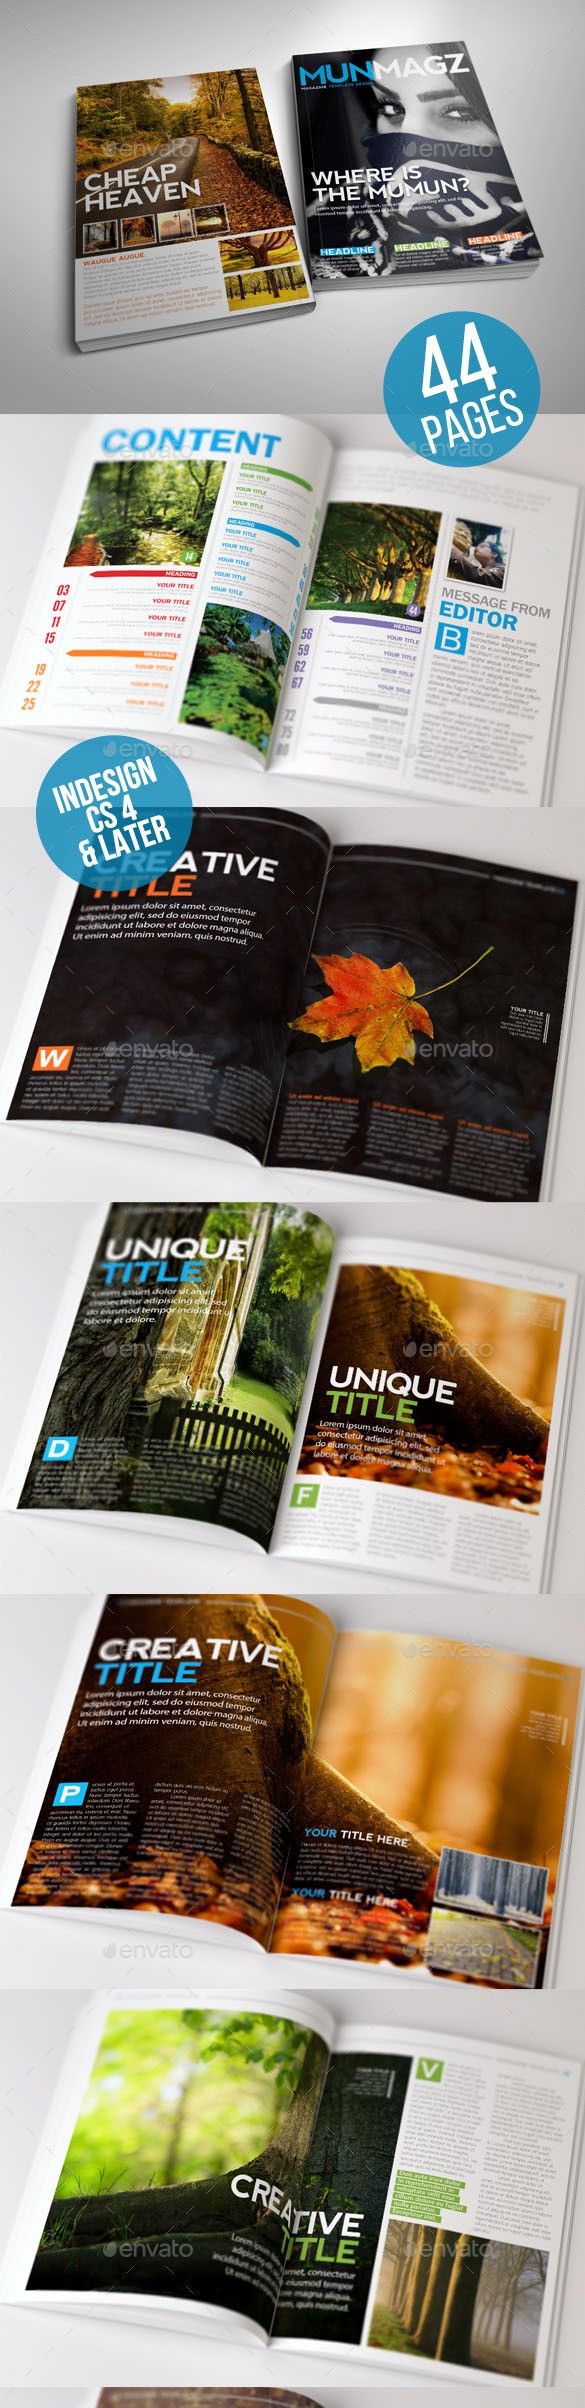 Clean and Simple Magazine Template 44 Page